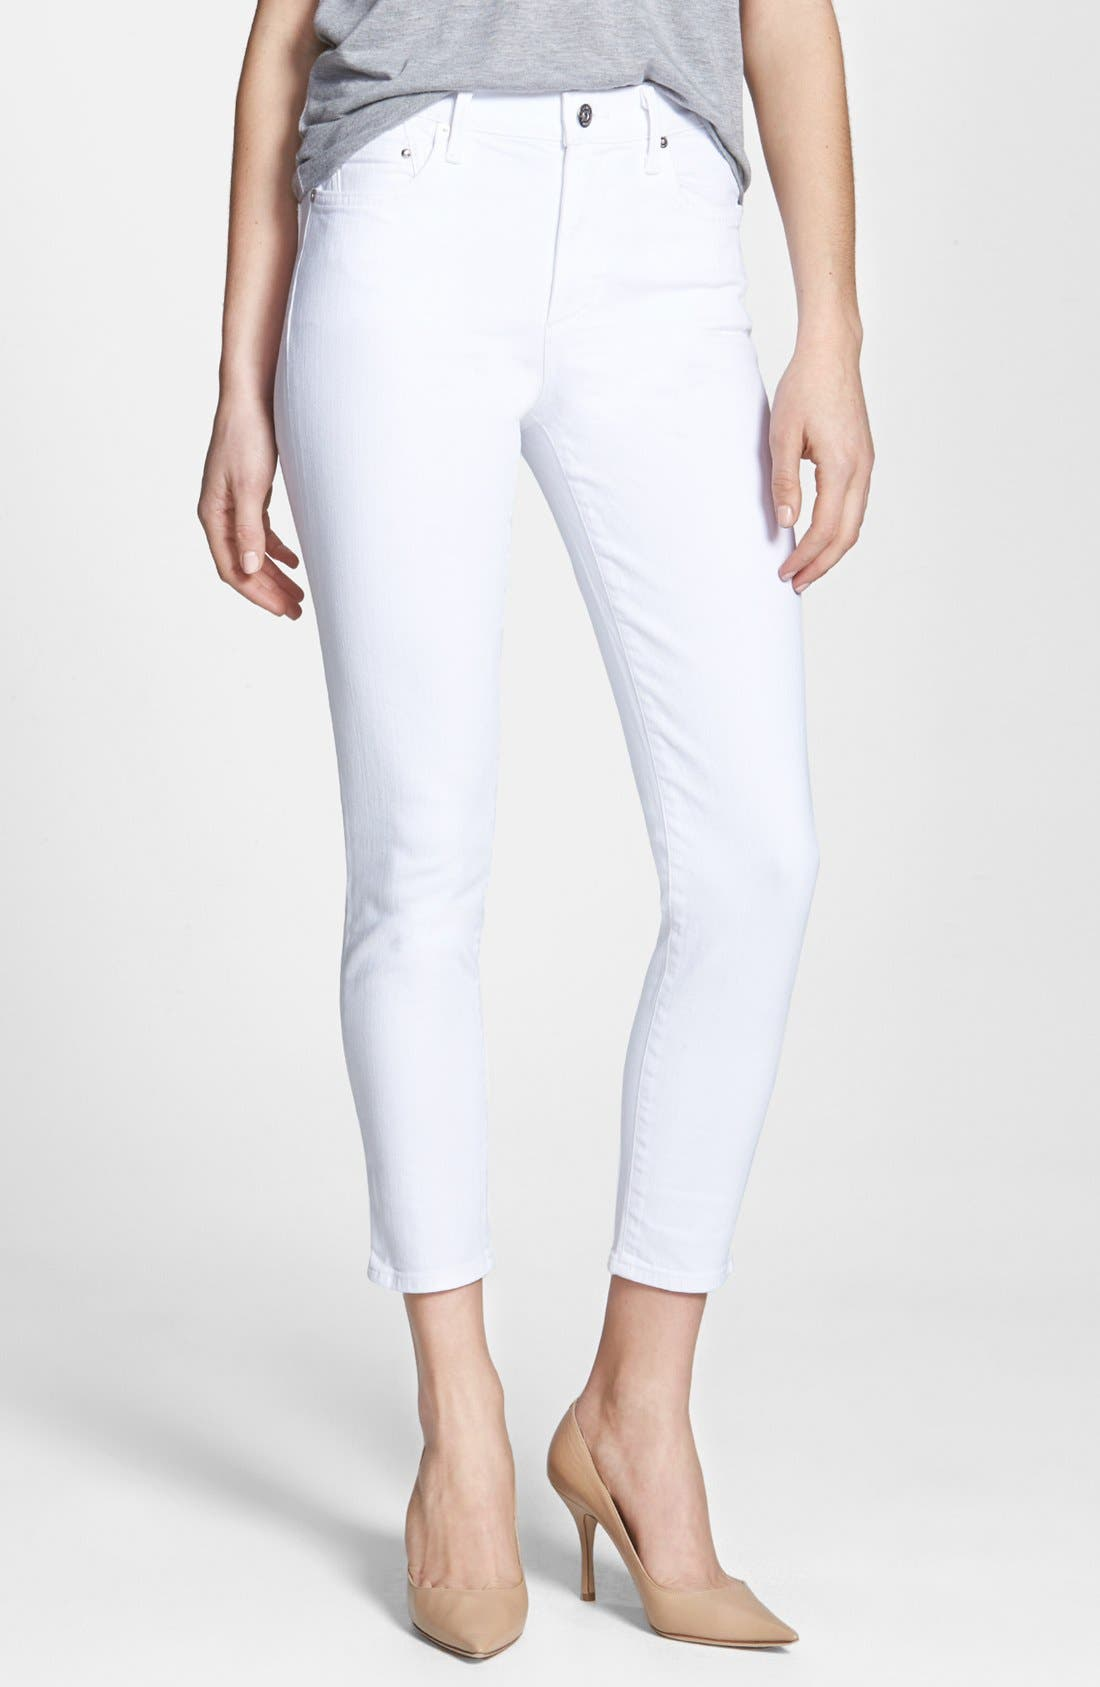 Main Image - Citizens of Humanity 'Racer' High Rise Skinny Jeans (Santorini White)